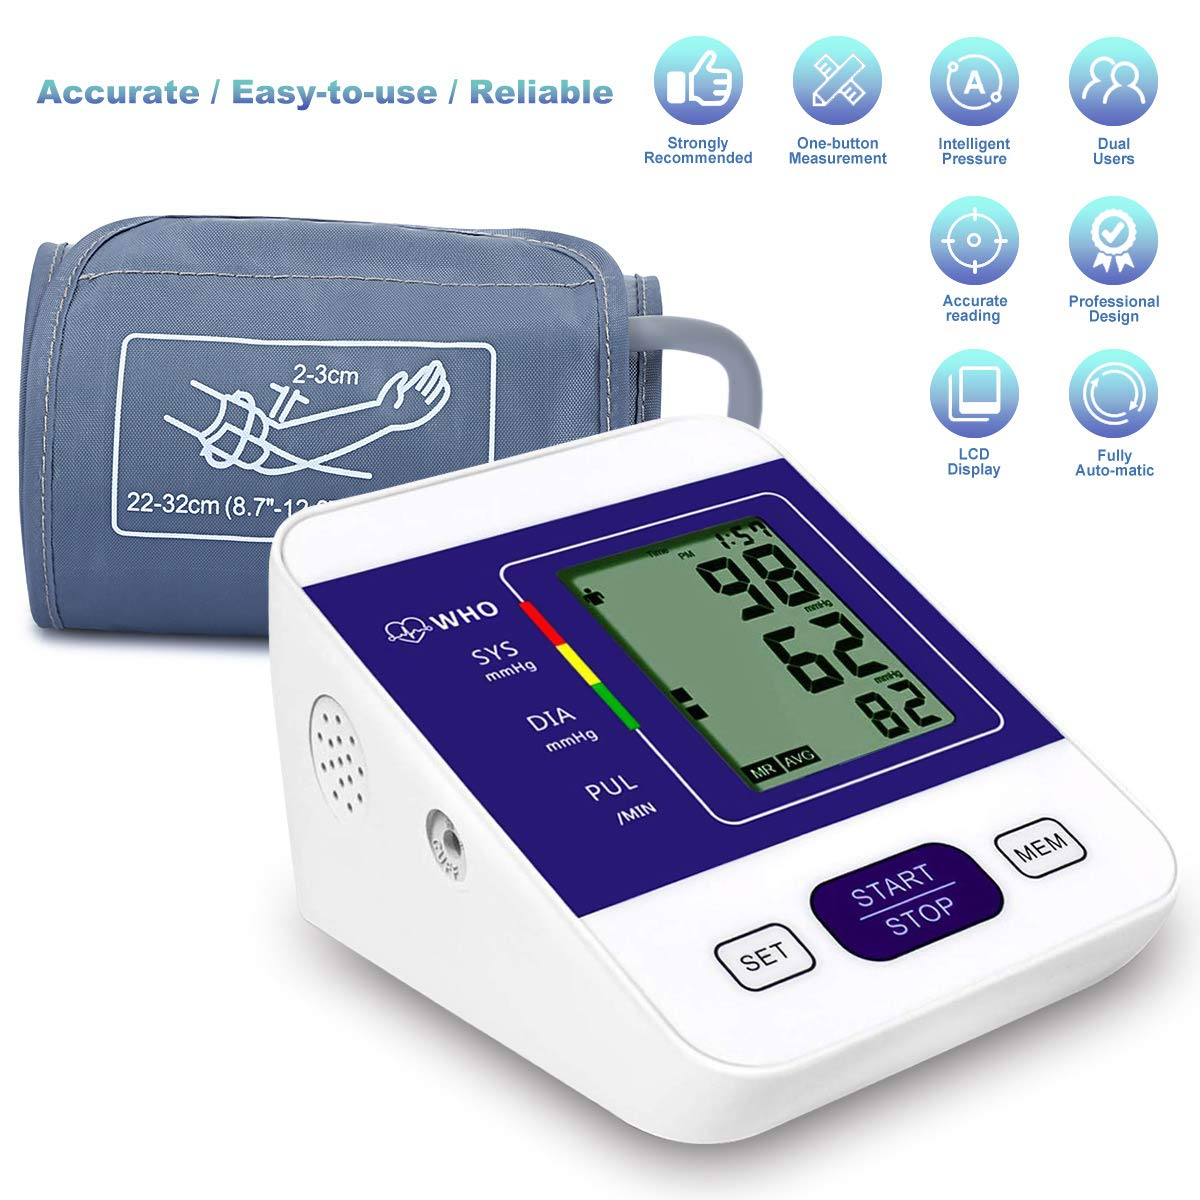 Blood Pressure Monitor, CAZON Wireless Upper Arm Blood Pressure Monitor Digital Hypertension Detector Automatic Heart Rate Pulse Monitor with Large Screen Display Home Use Care Device